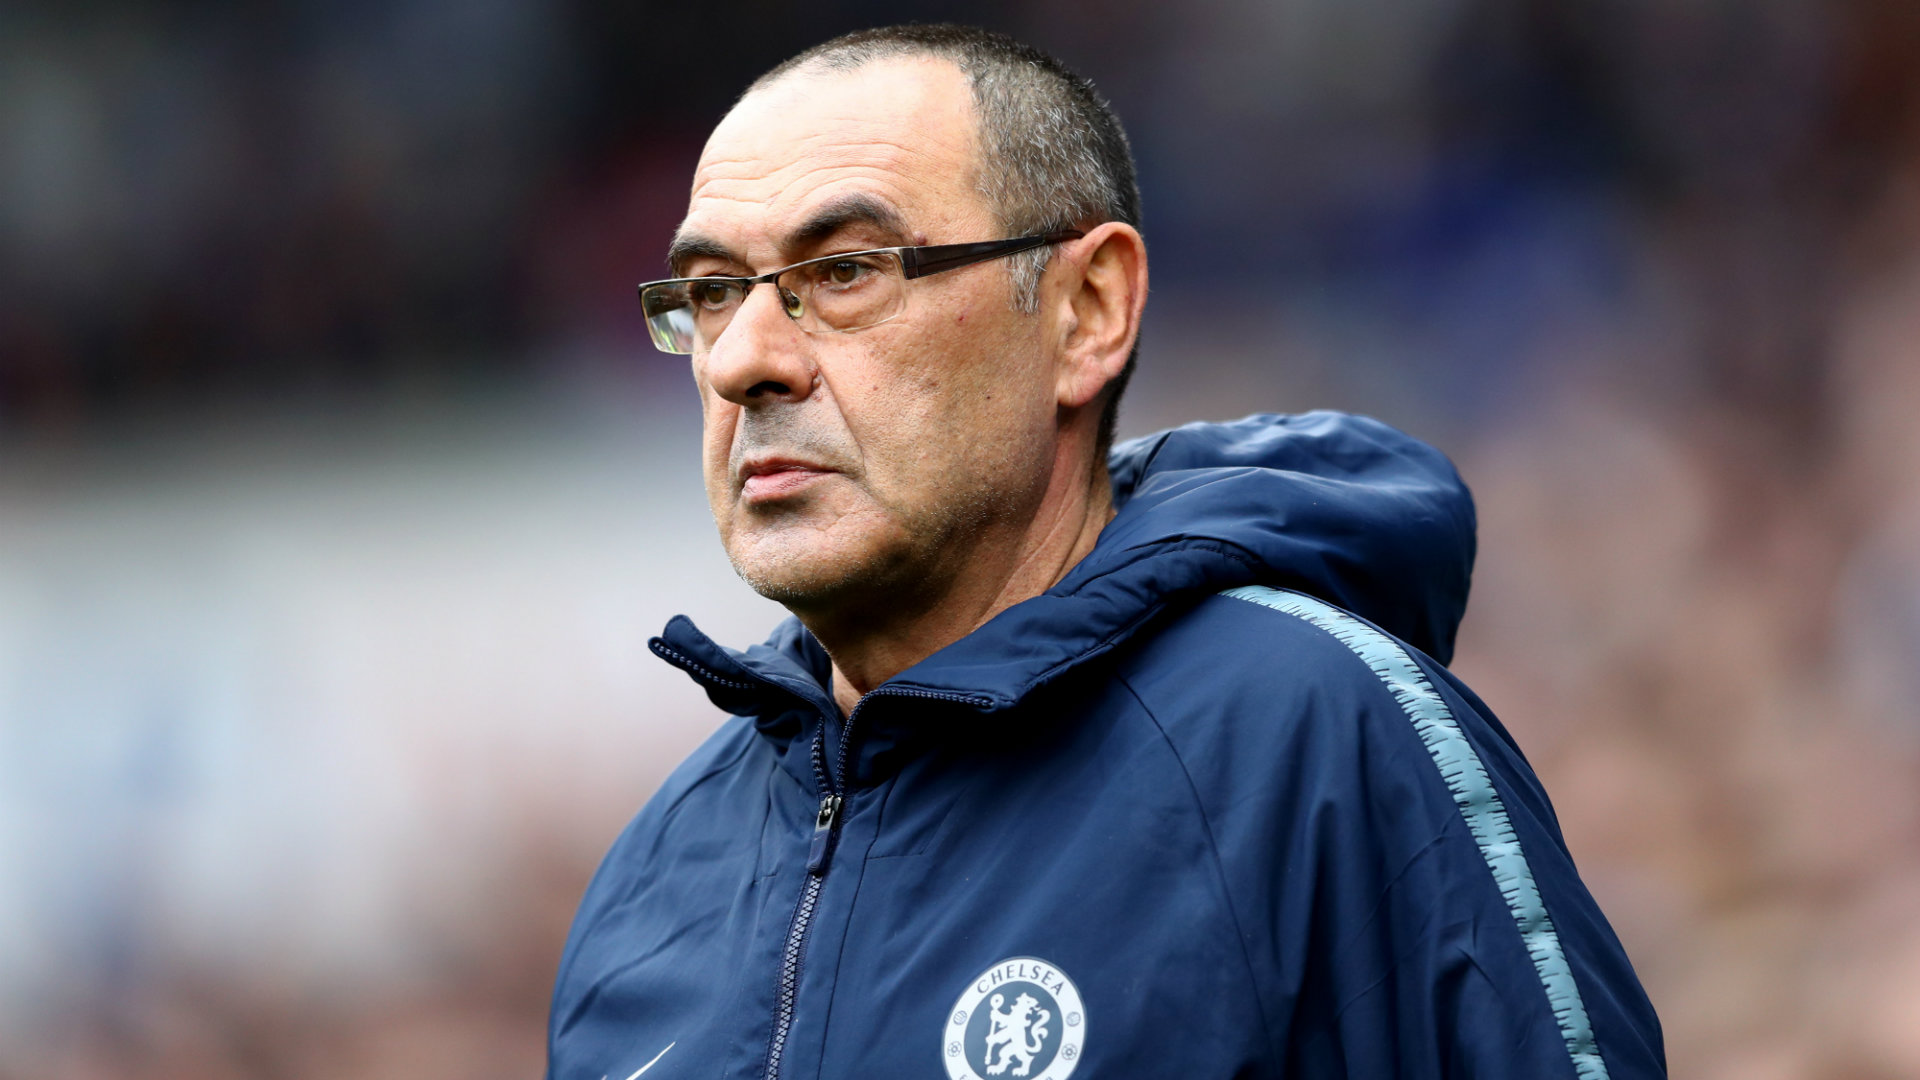 Chelsea's Hudson-Odoi to get first Premier League start this week - Sarri